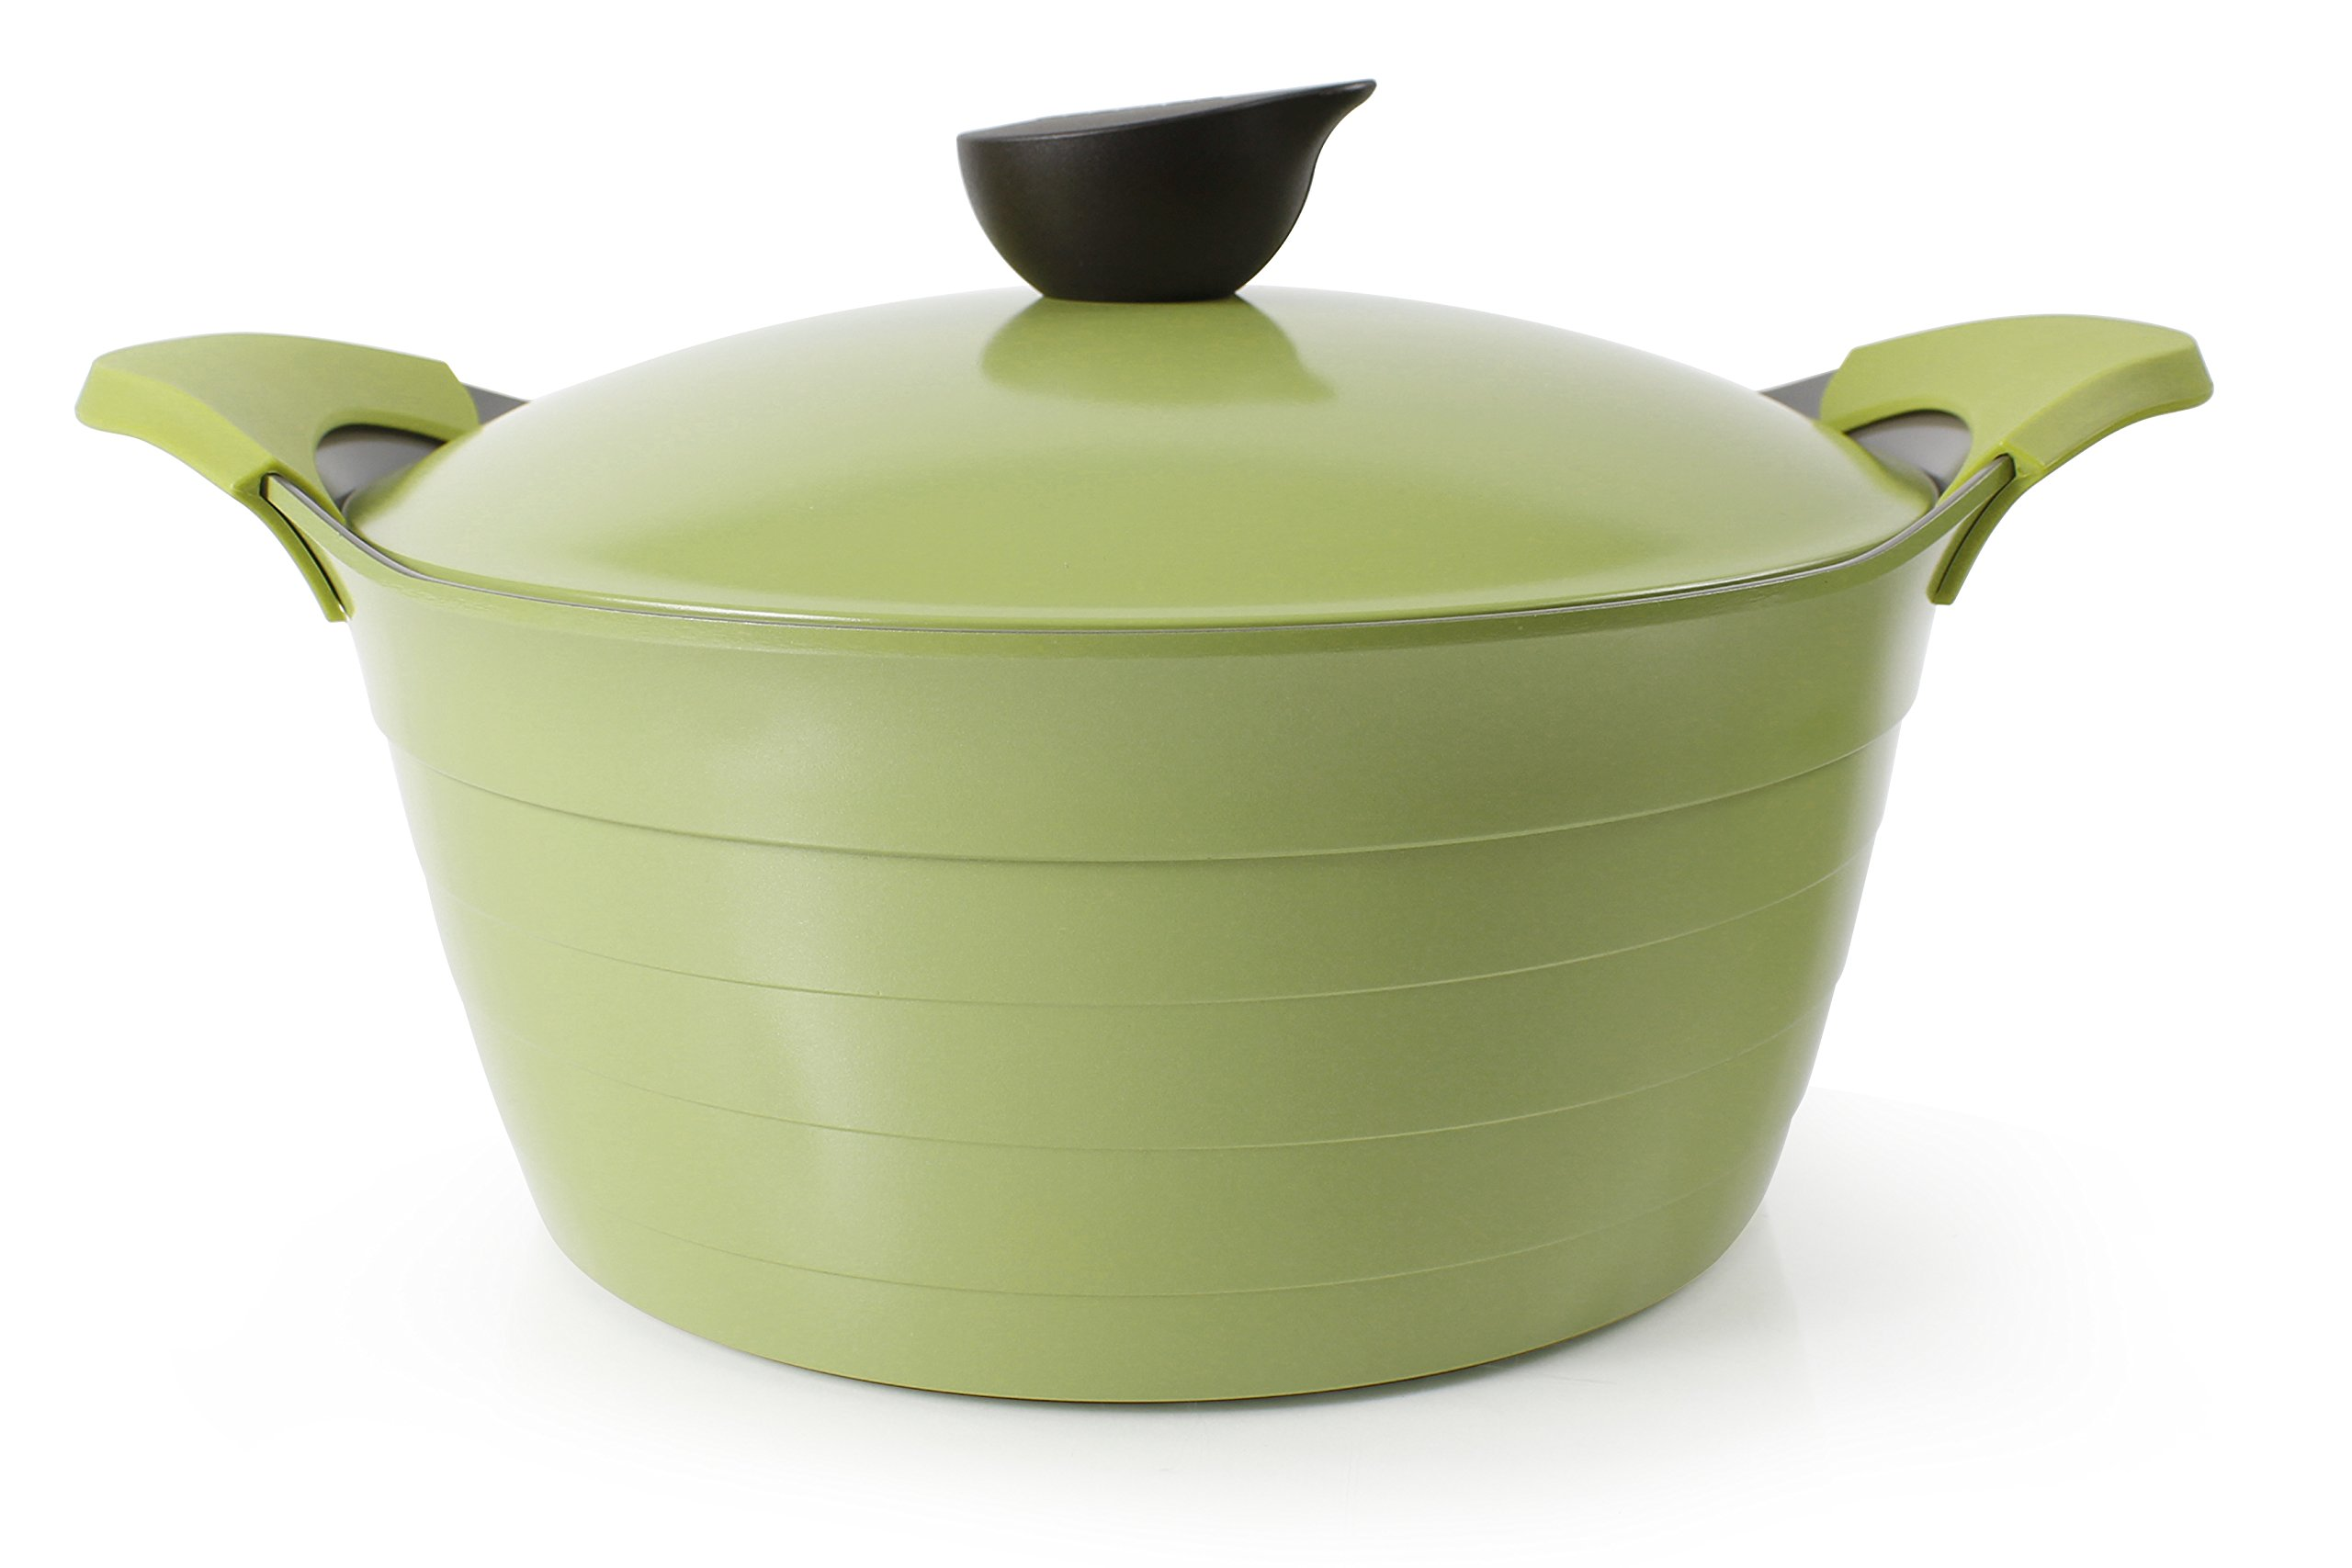 Neoflam Eela 7 QT Ceramic Nonstick Stockpot with Steam Releasing Lid in Olive Green by Neoflam